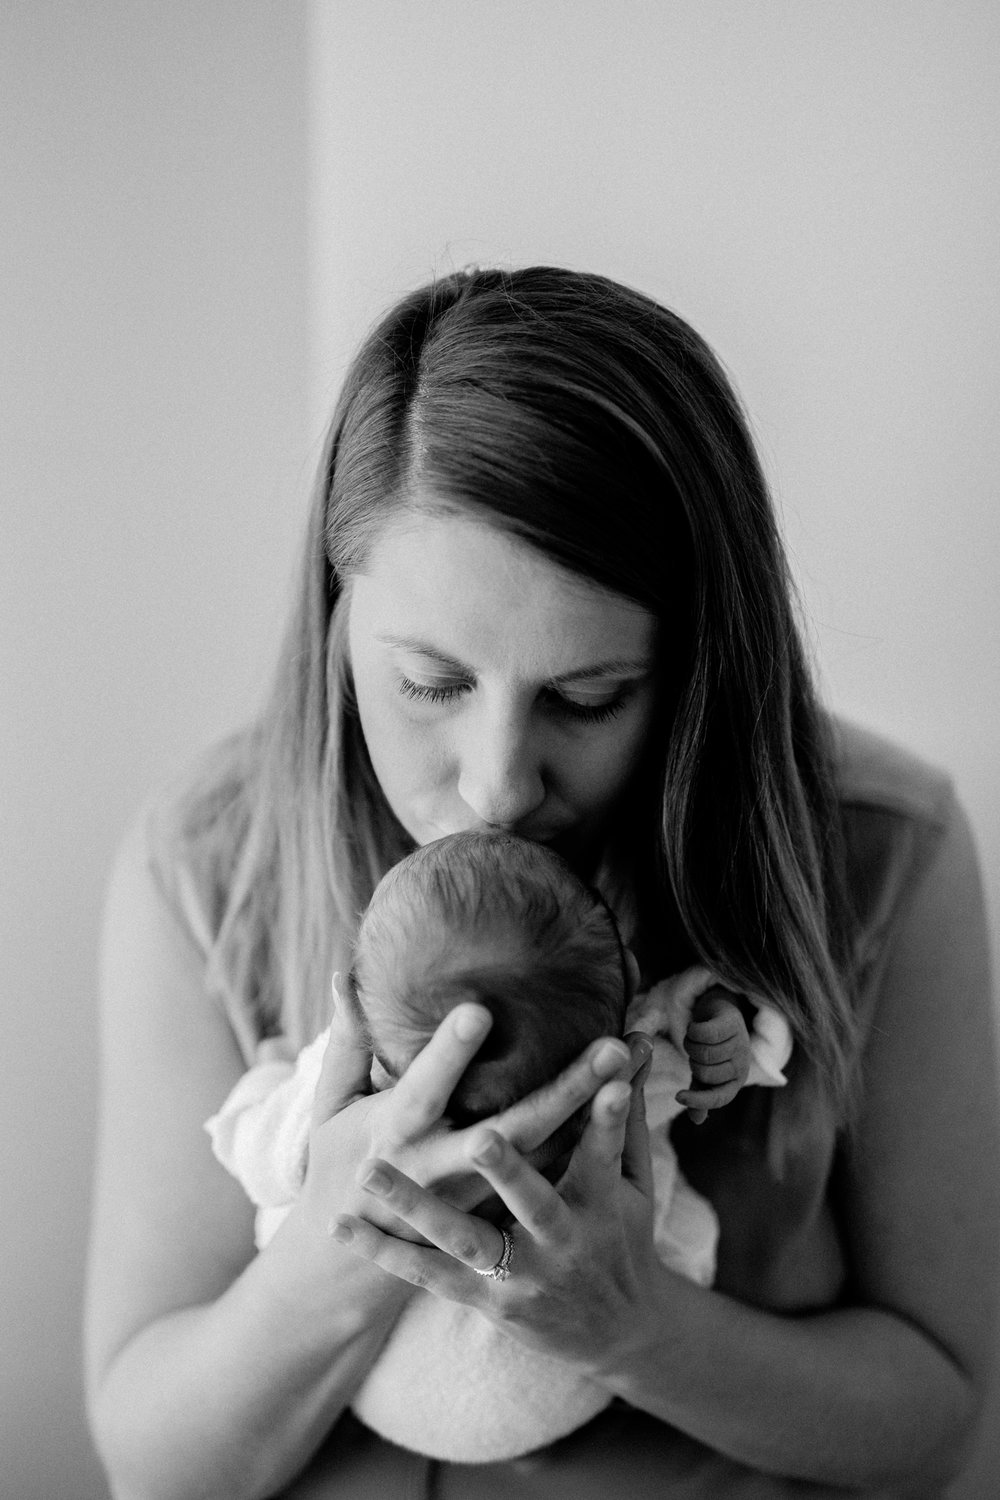 Baby Amelia - Natural Newborn Photography in Adelaide - Simple Newborn Photography - Beautiful Newborn Photography - Katherine Schultz - www.katherineschultzphotography.com_0018.jpg